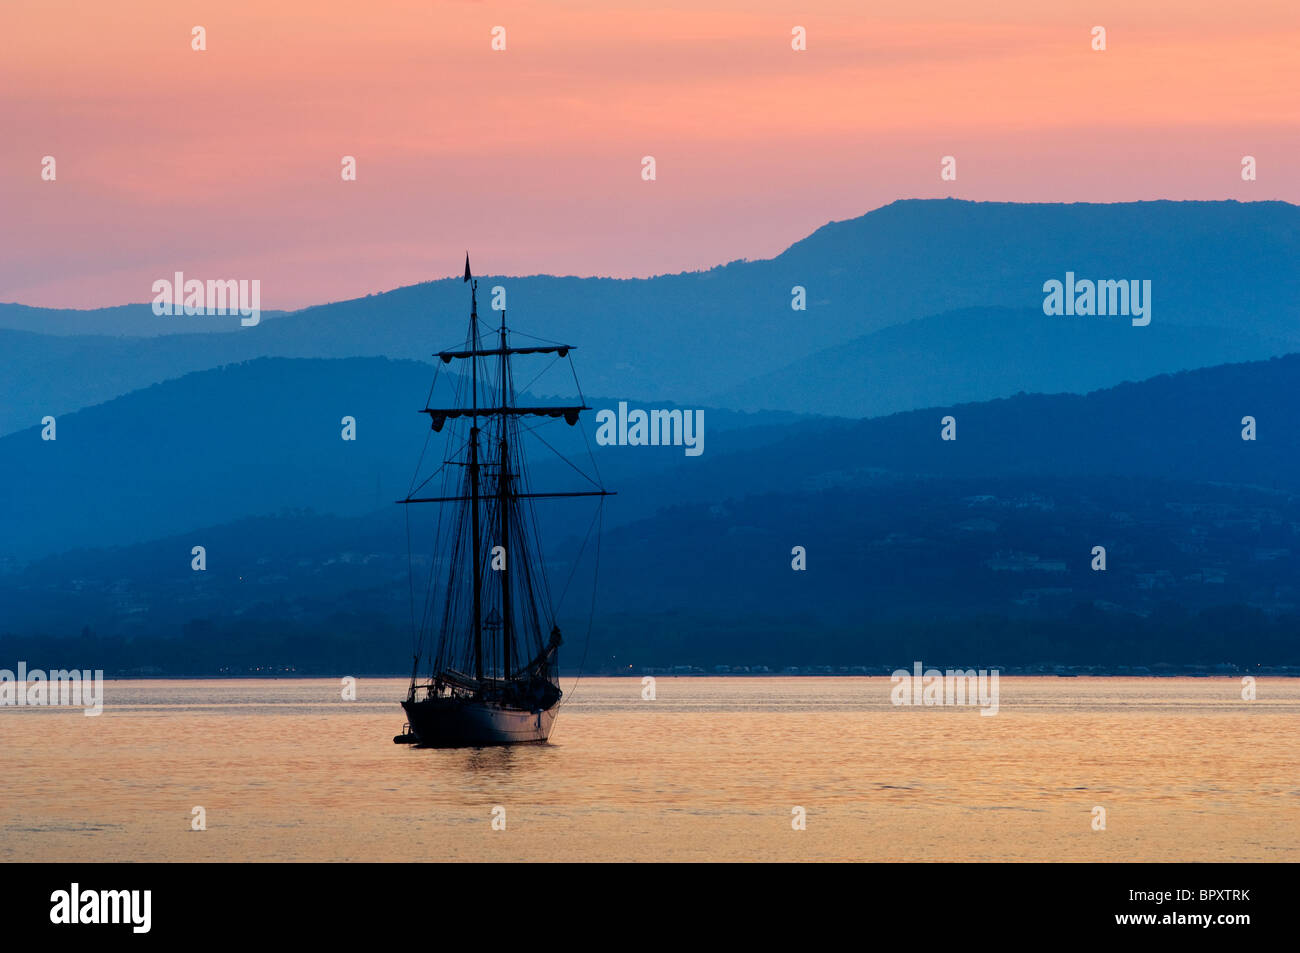 A square rigged sailing boat at anchor in the Golfe de St Tropez - Stock Image